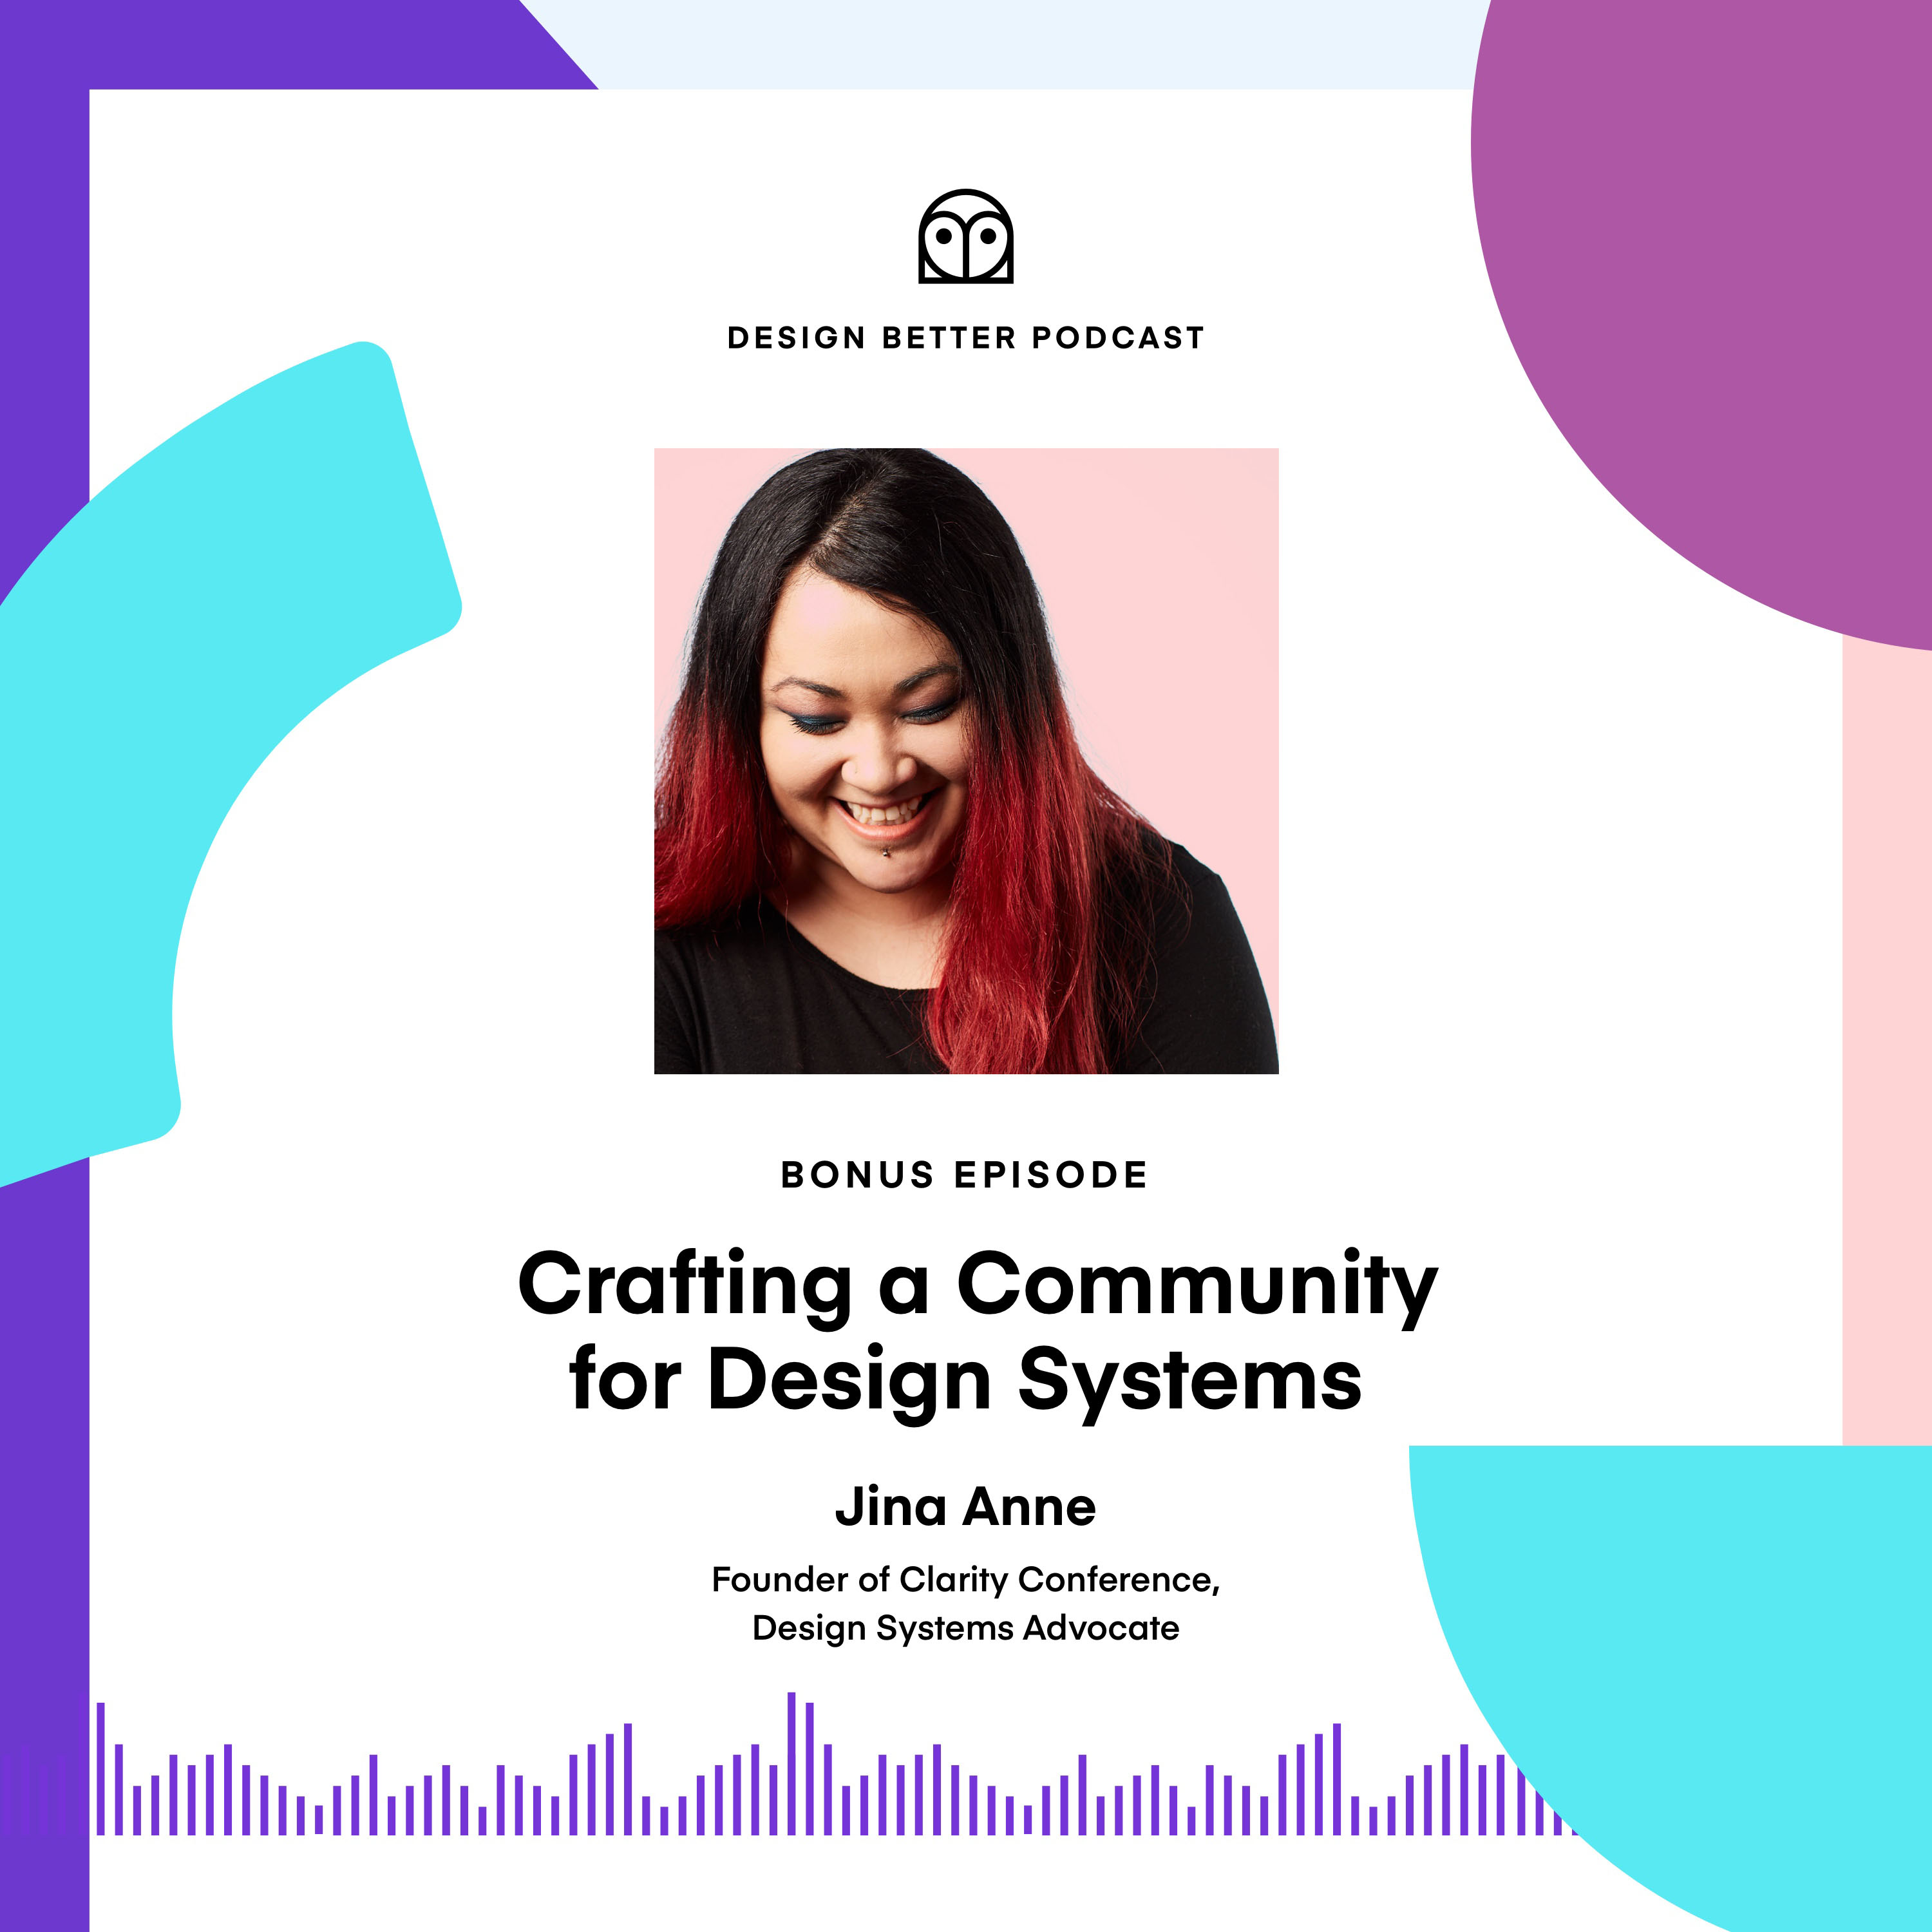 Jina Anne, Founder of Clarity Conference, on Crafting a Community for Design Systems